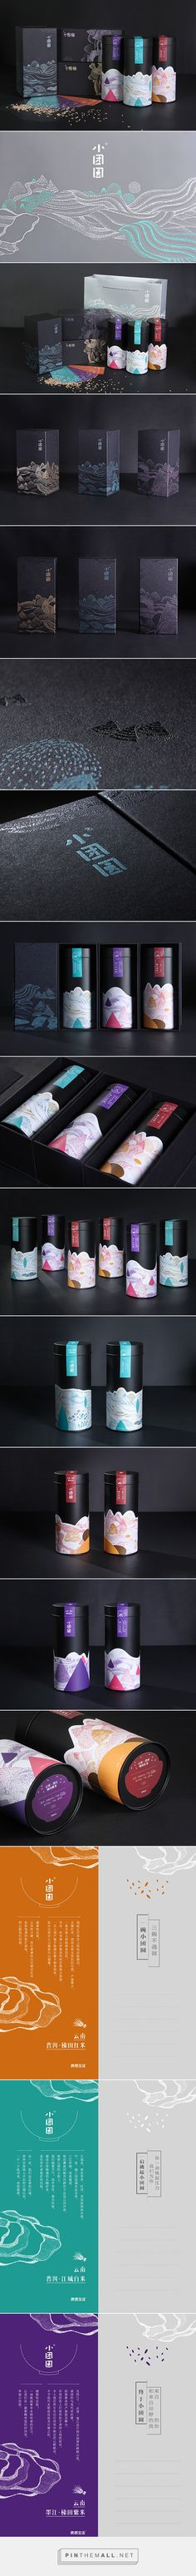 xiaotuanyuan on Behance designed by Yi Mi Xiaoxin curated by Packaging Diva PD.